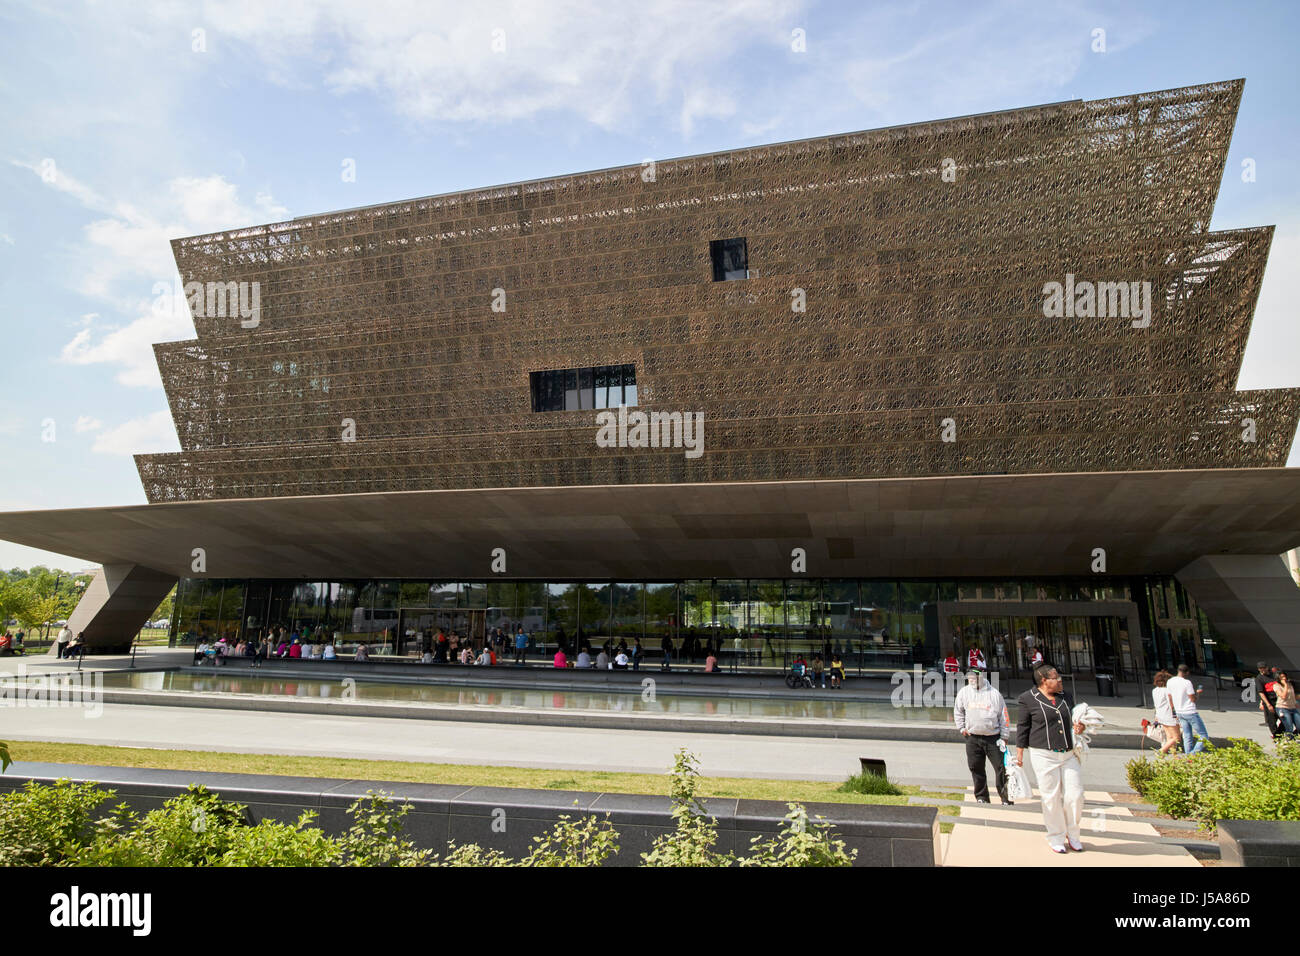 culture and history of african Experience african american history, culture and entertainment in washington, dc with this three-day trip itinerary.